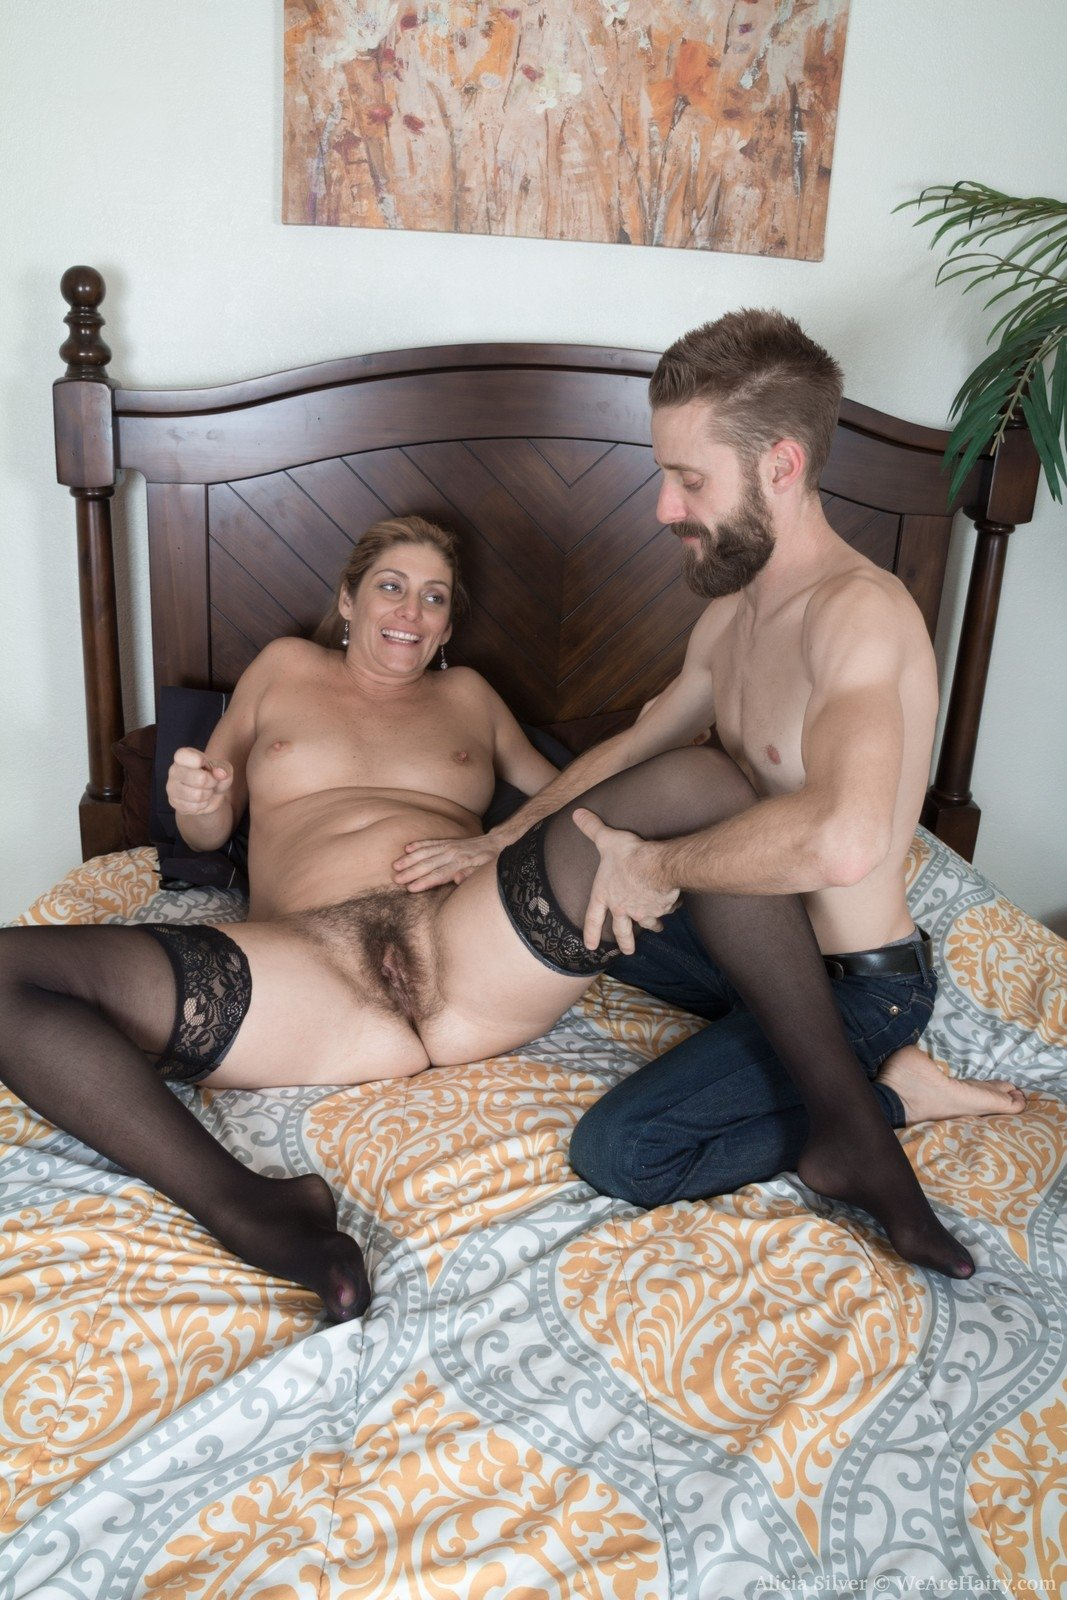 Big cock fuck has hubby watch while wife